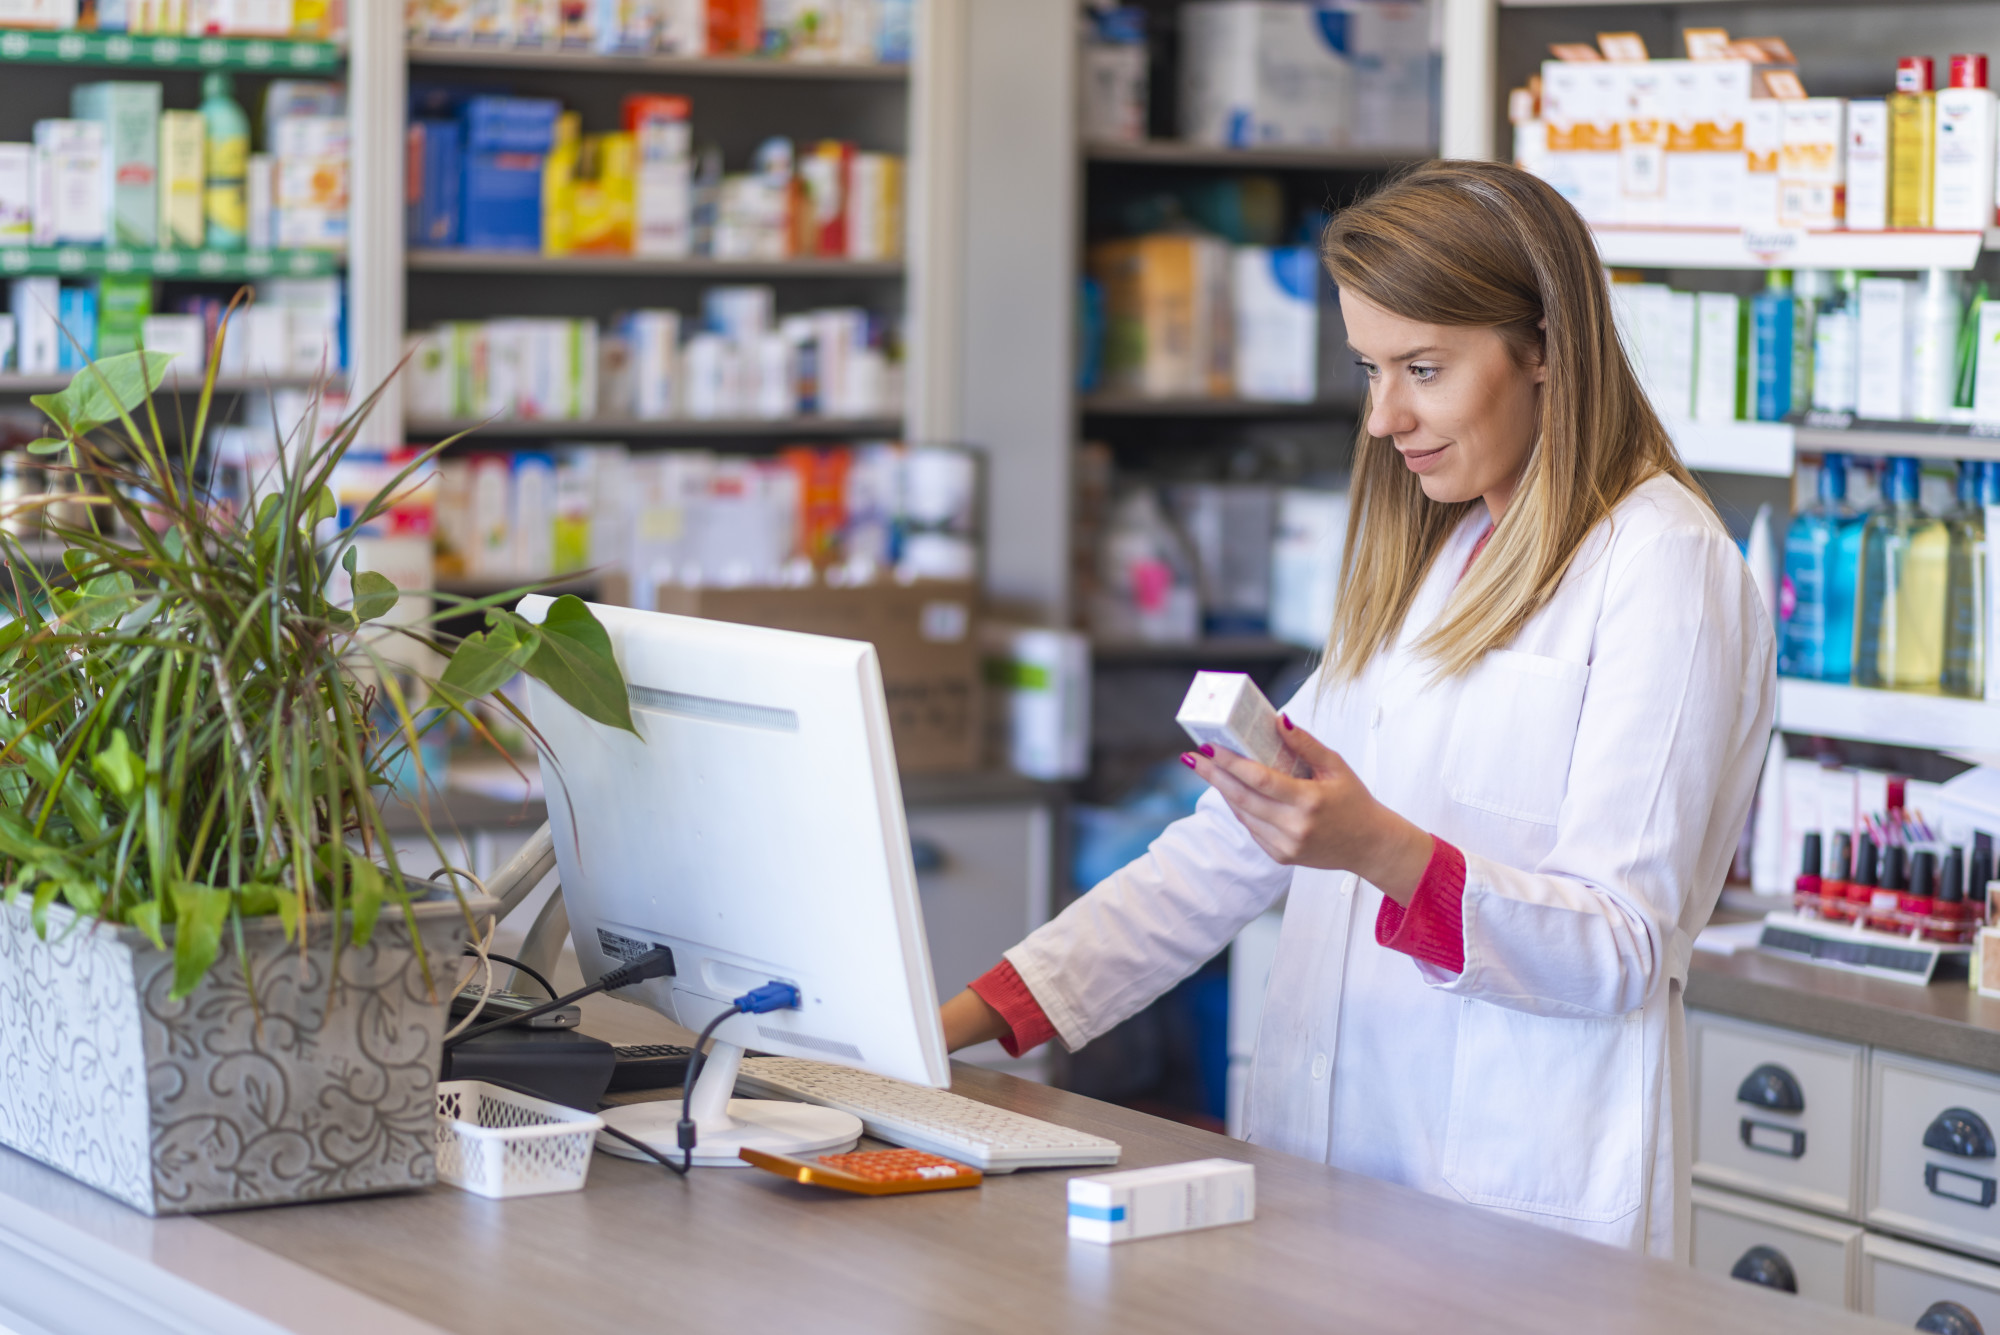 how to get an emergency prescription refill